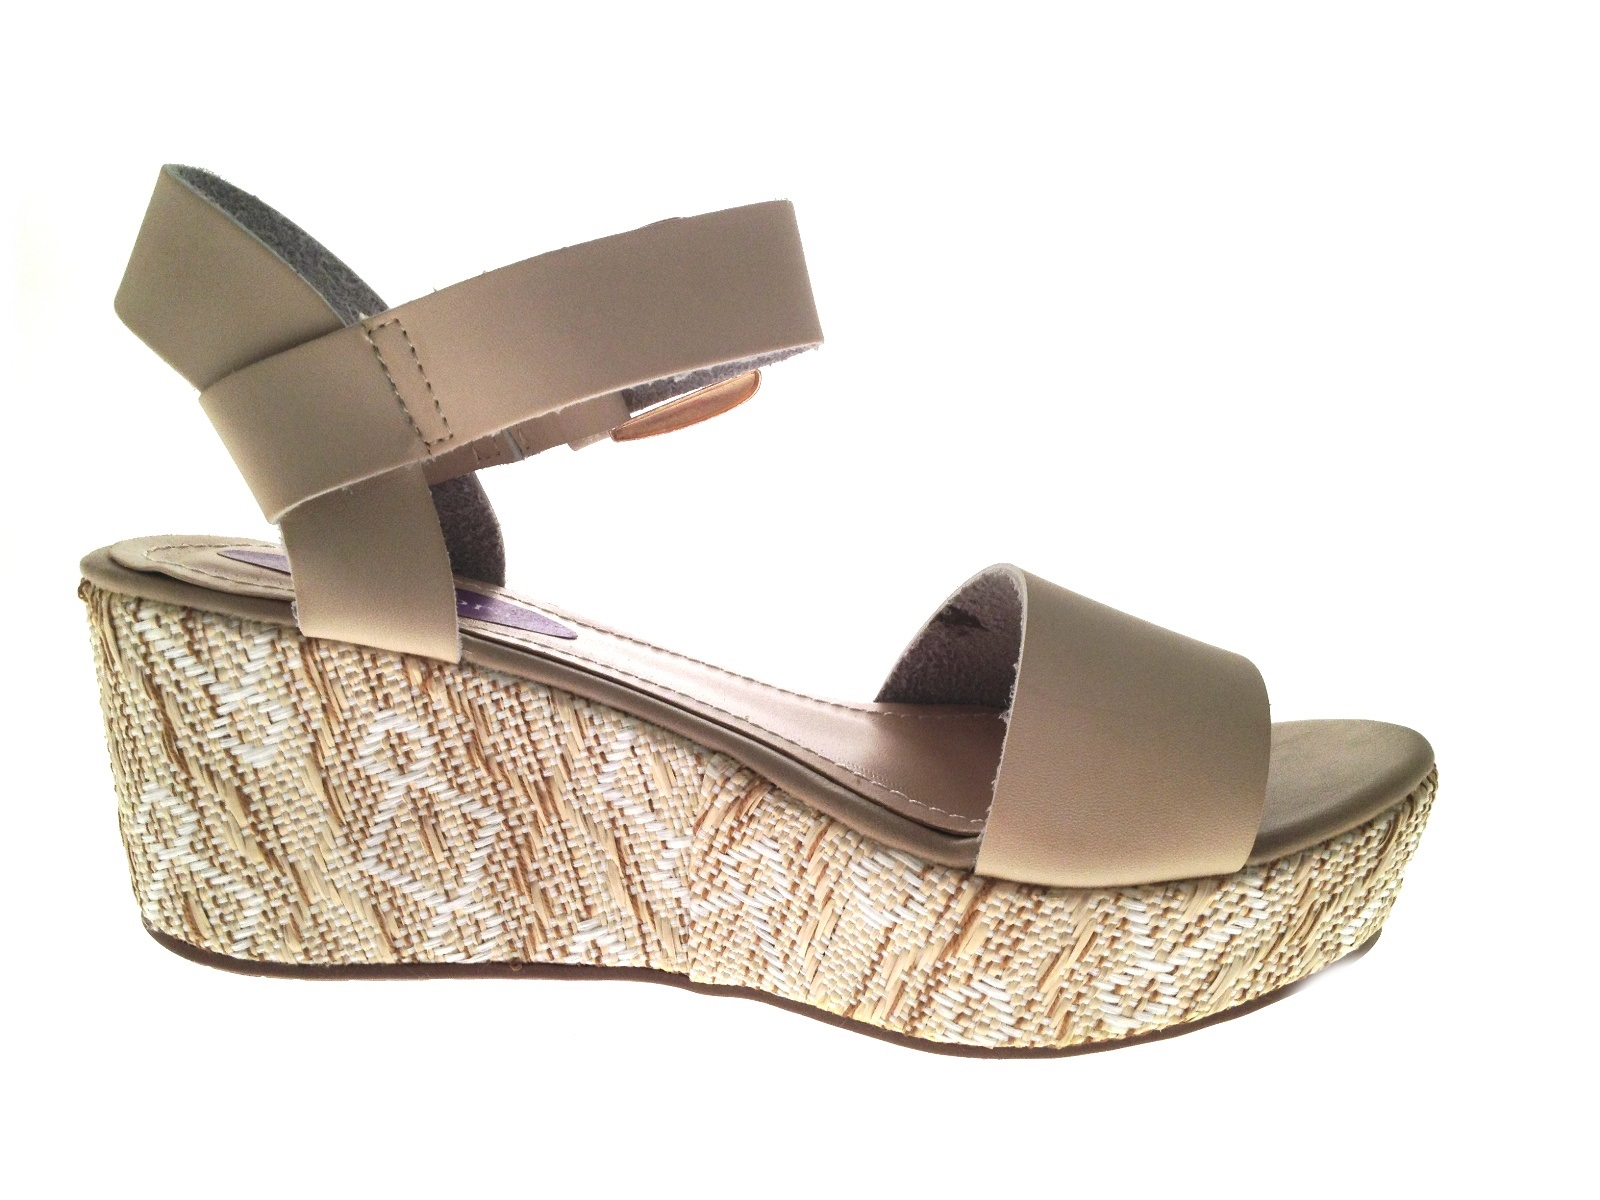 Shop for and buy girls wedge shoes online at Macy's. Find girls wedge shoes at Macy's.